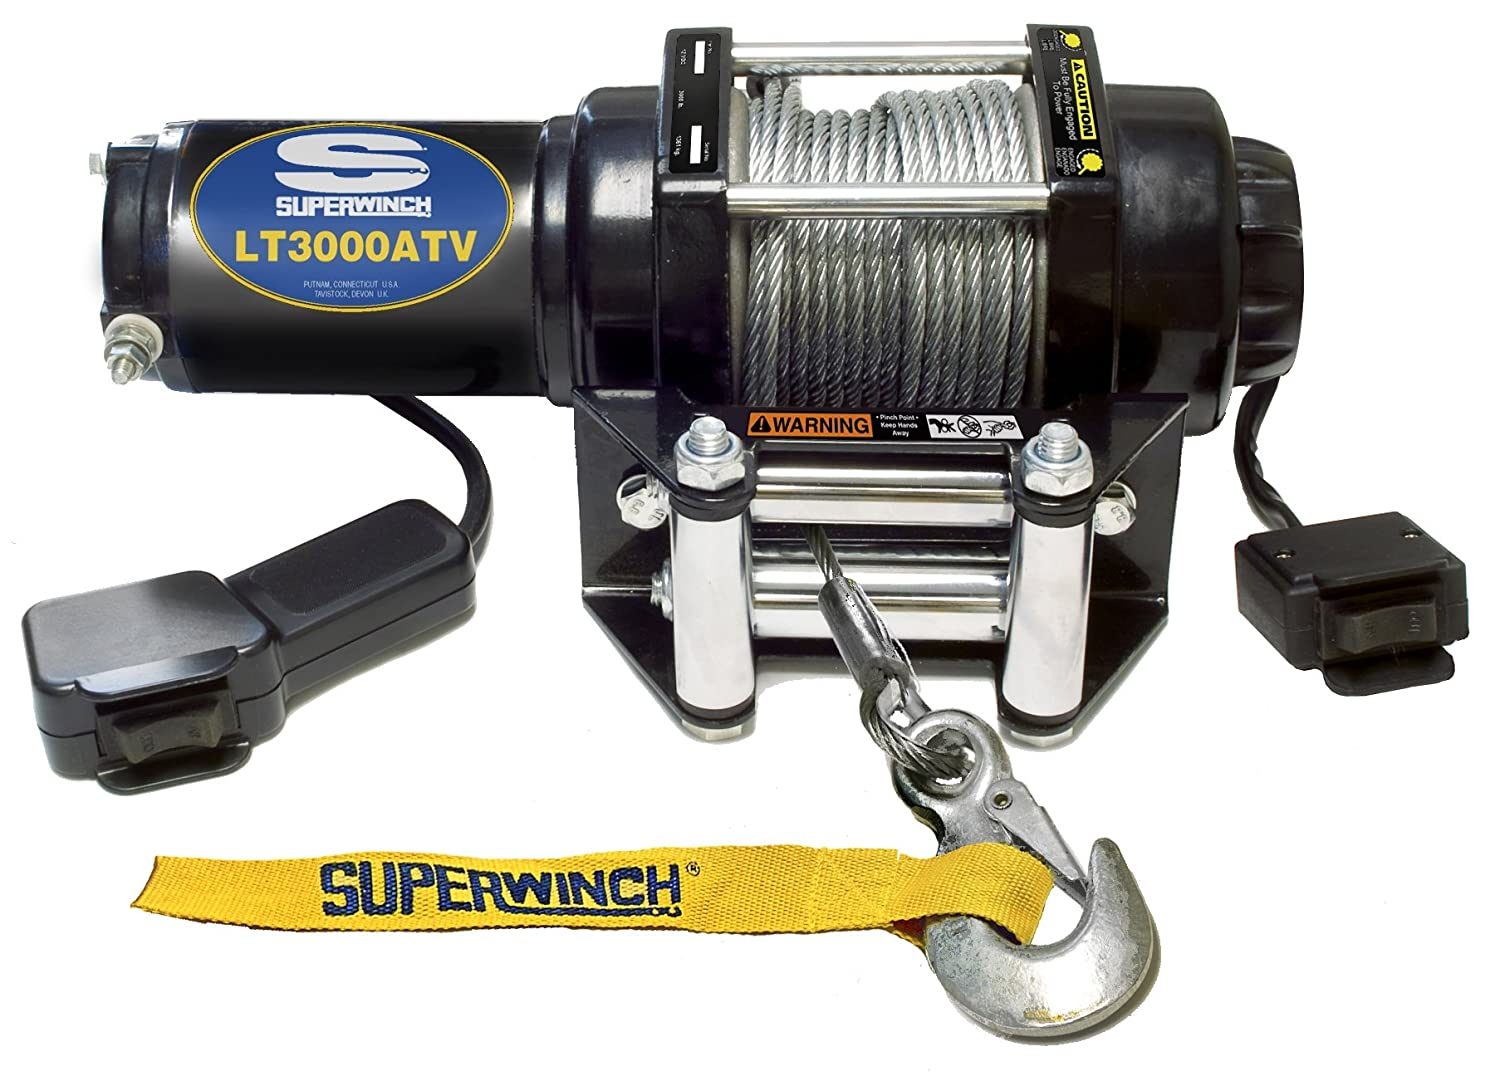 Superwinch 1135220 Terra 35 3500lbs 1591kg Single Line X3 Wiring Diagram 1130220 Lt3000atv 12 Vdc Winch 3000lbs 1360kg With Roller Fairlead Mount Plate Handlebar Rocker Switch And Handheld Remote